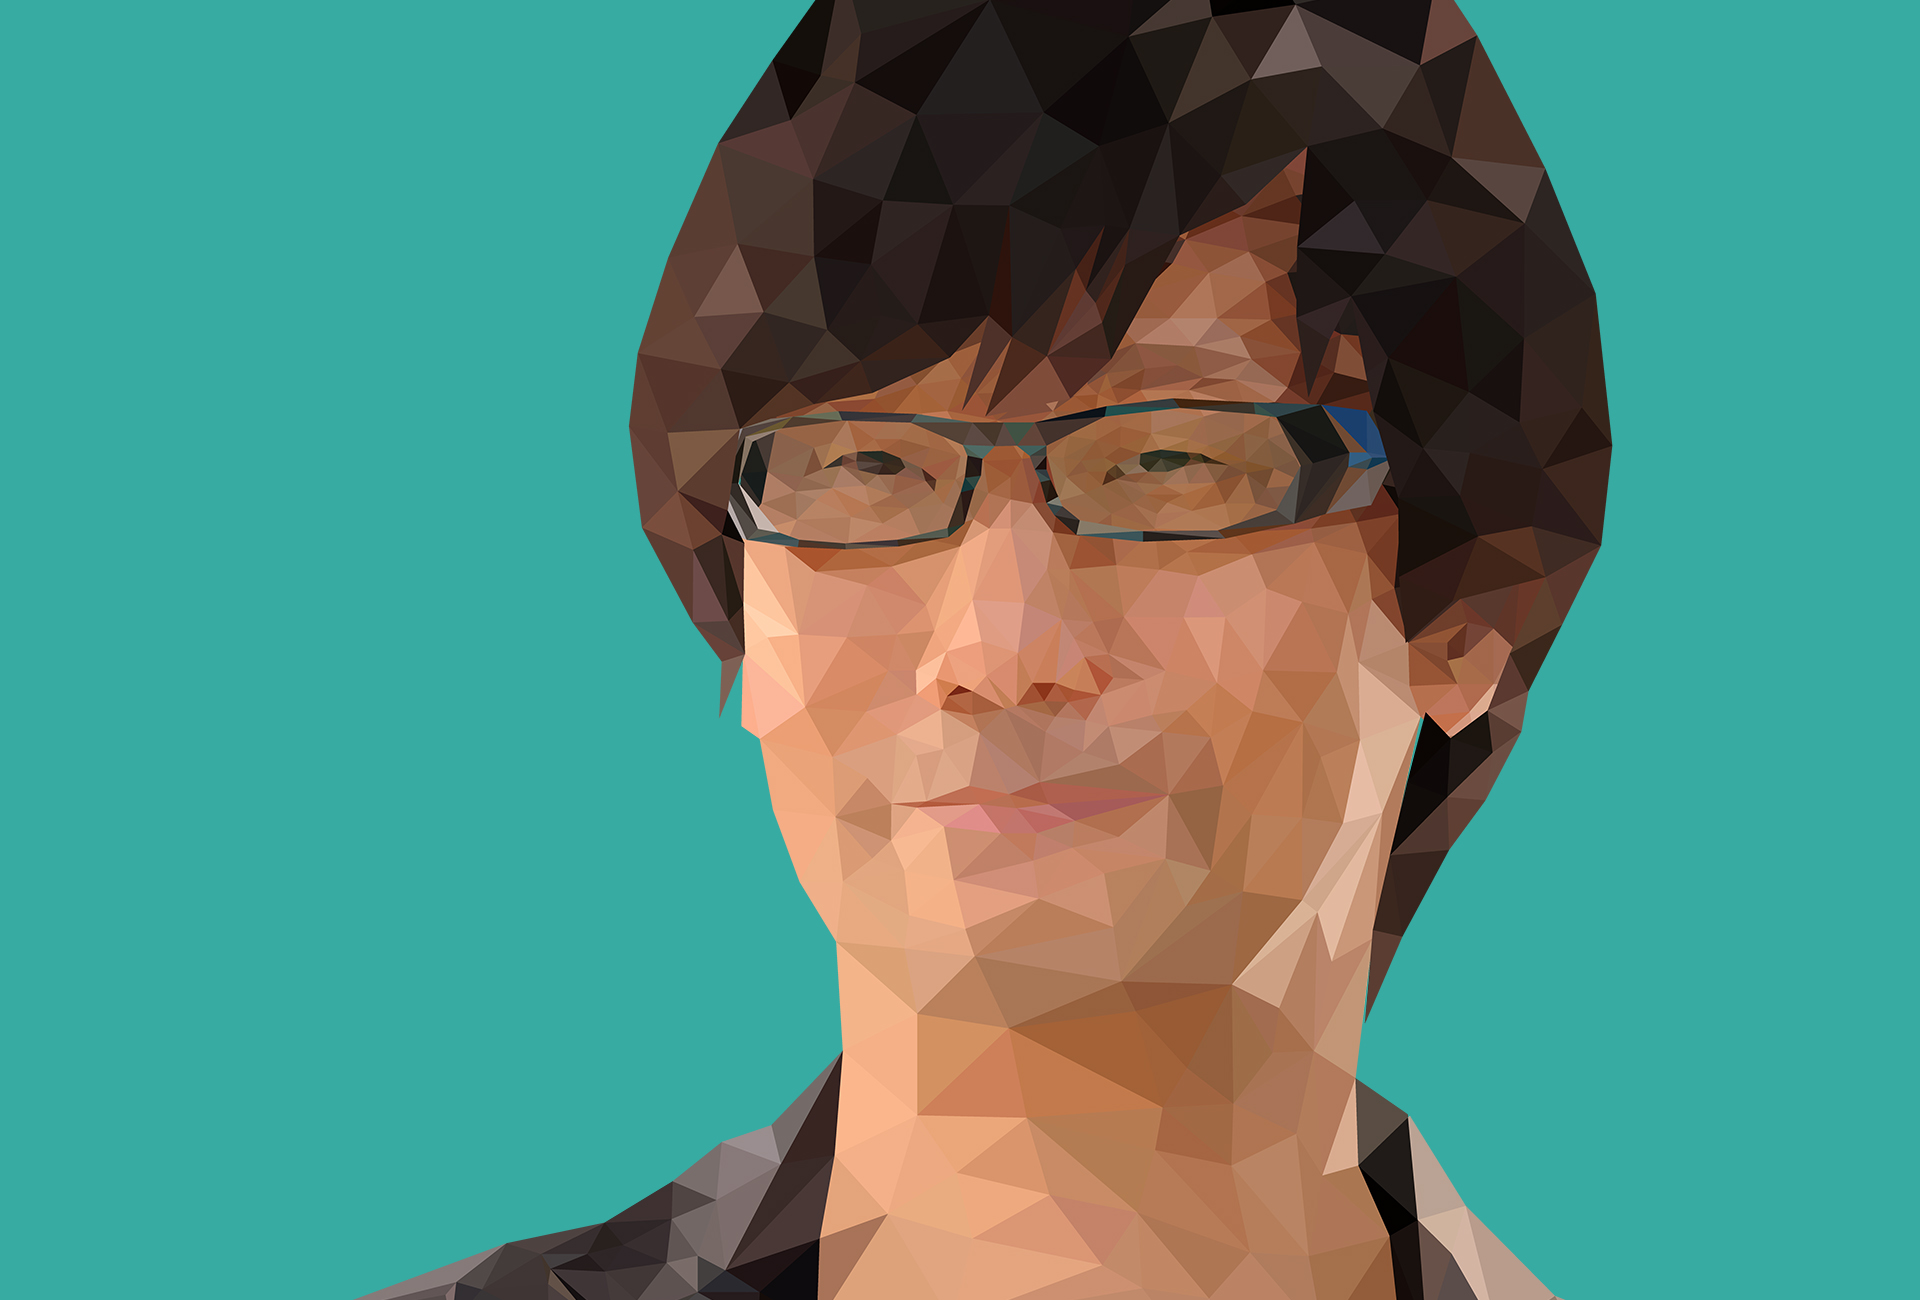 Low Poly Hideo Kojima - Лоу Поли Хидео Кодзима